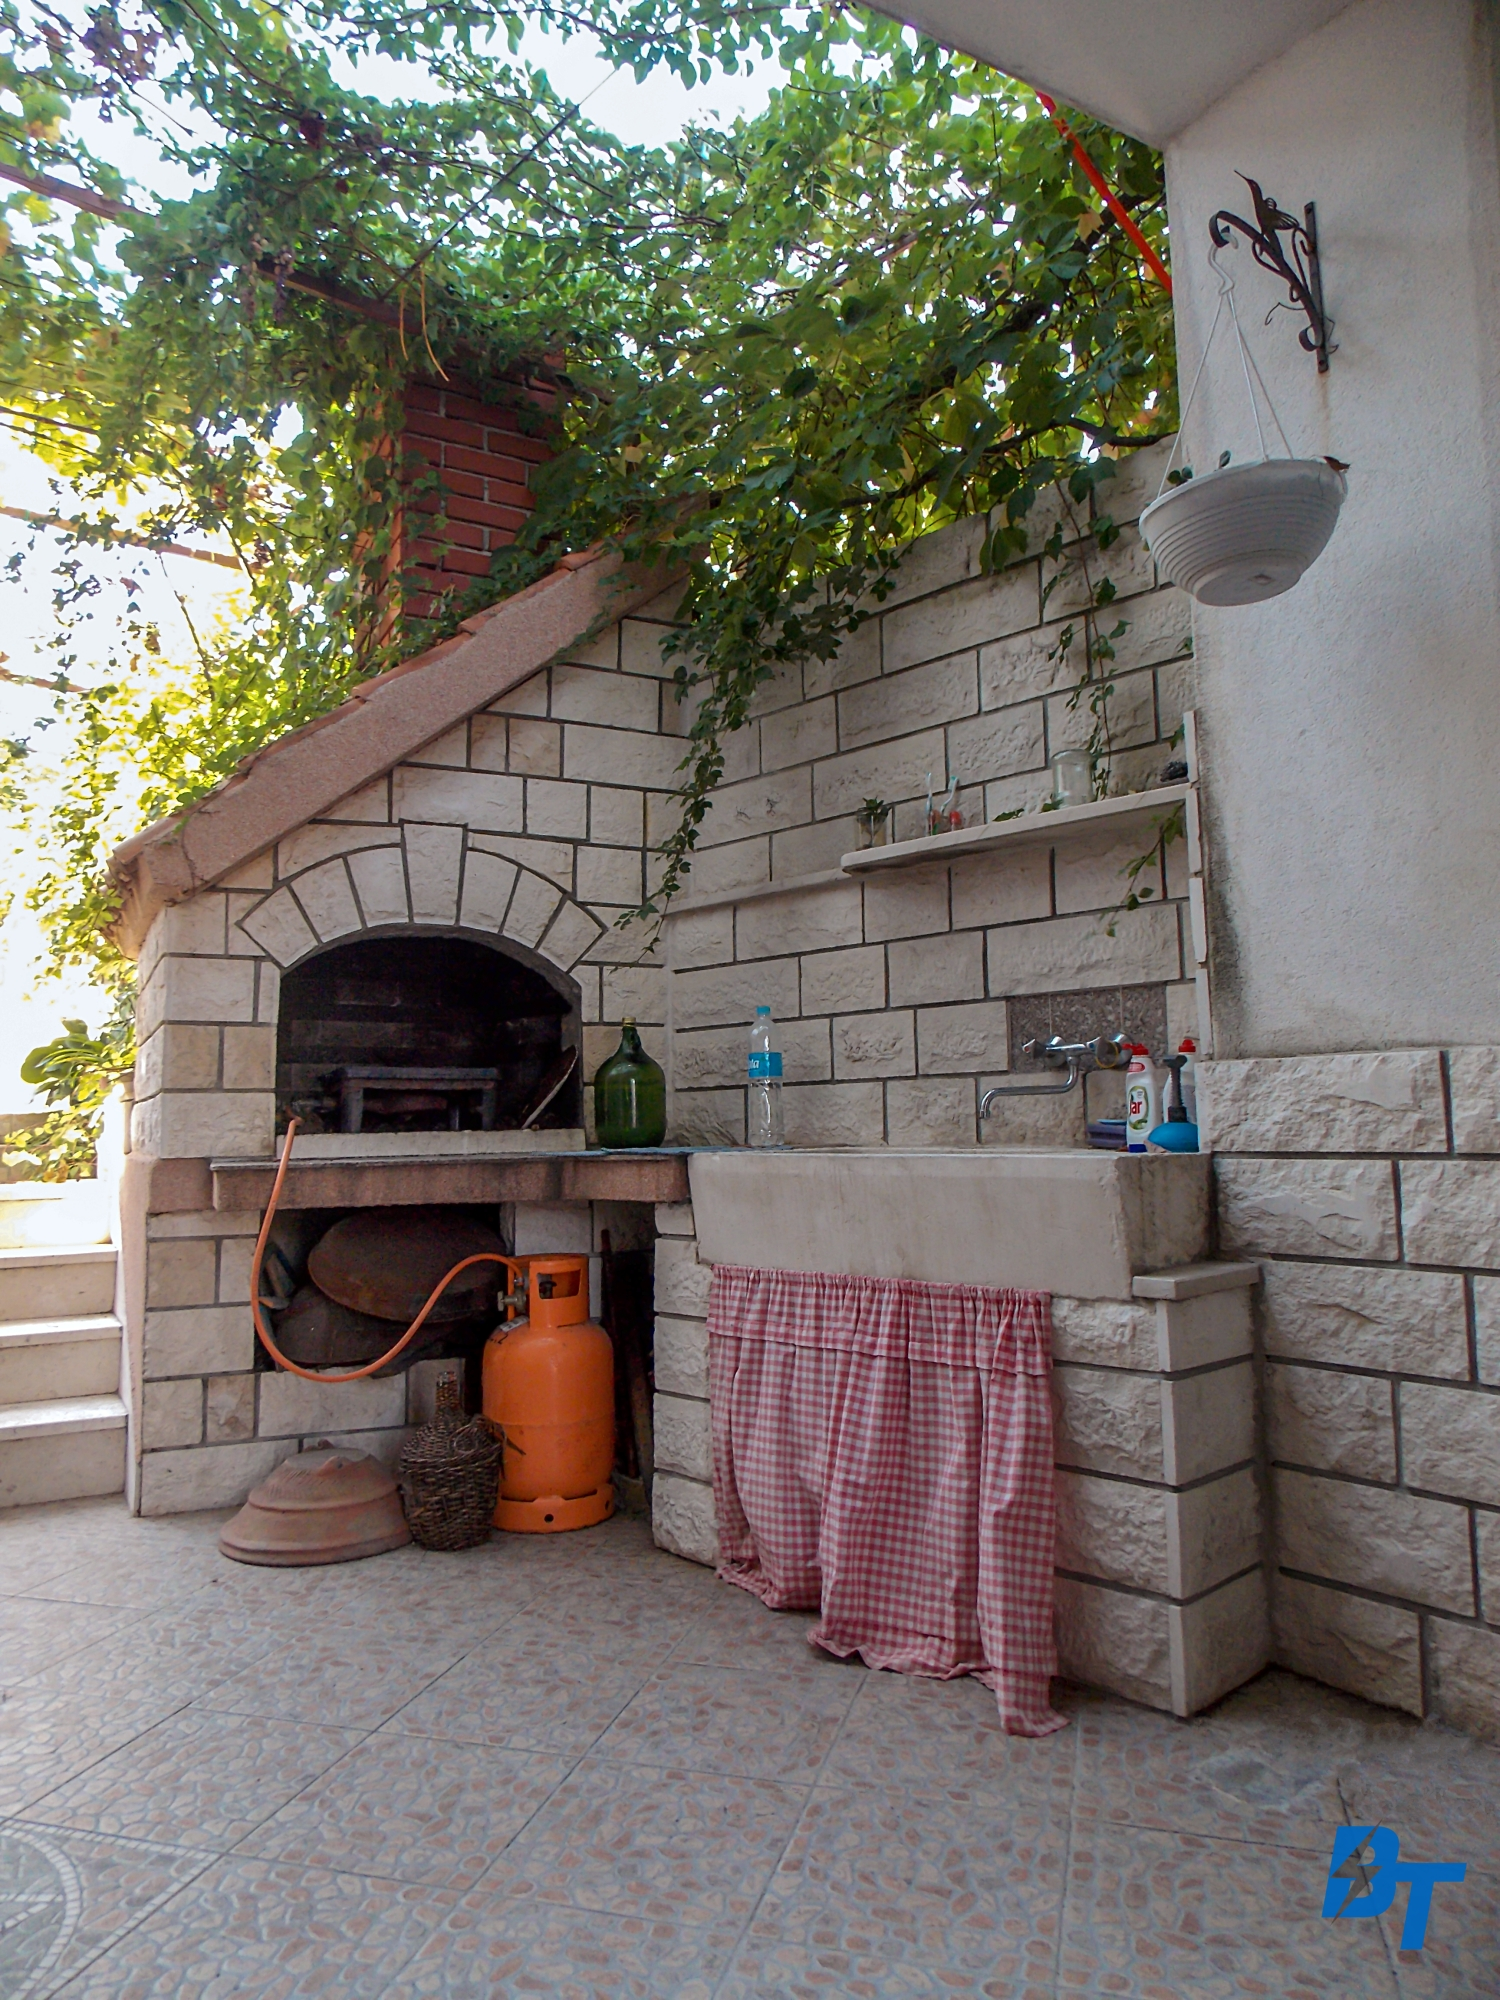 Courtyard with a Barbecue/Pizza Oven